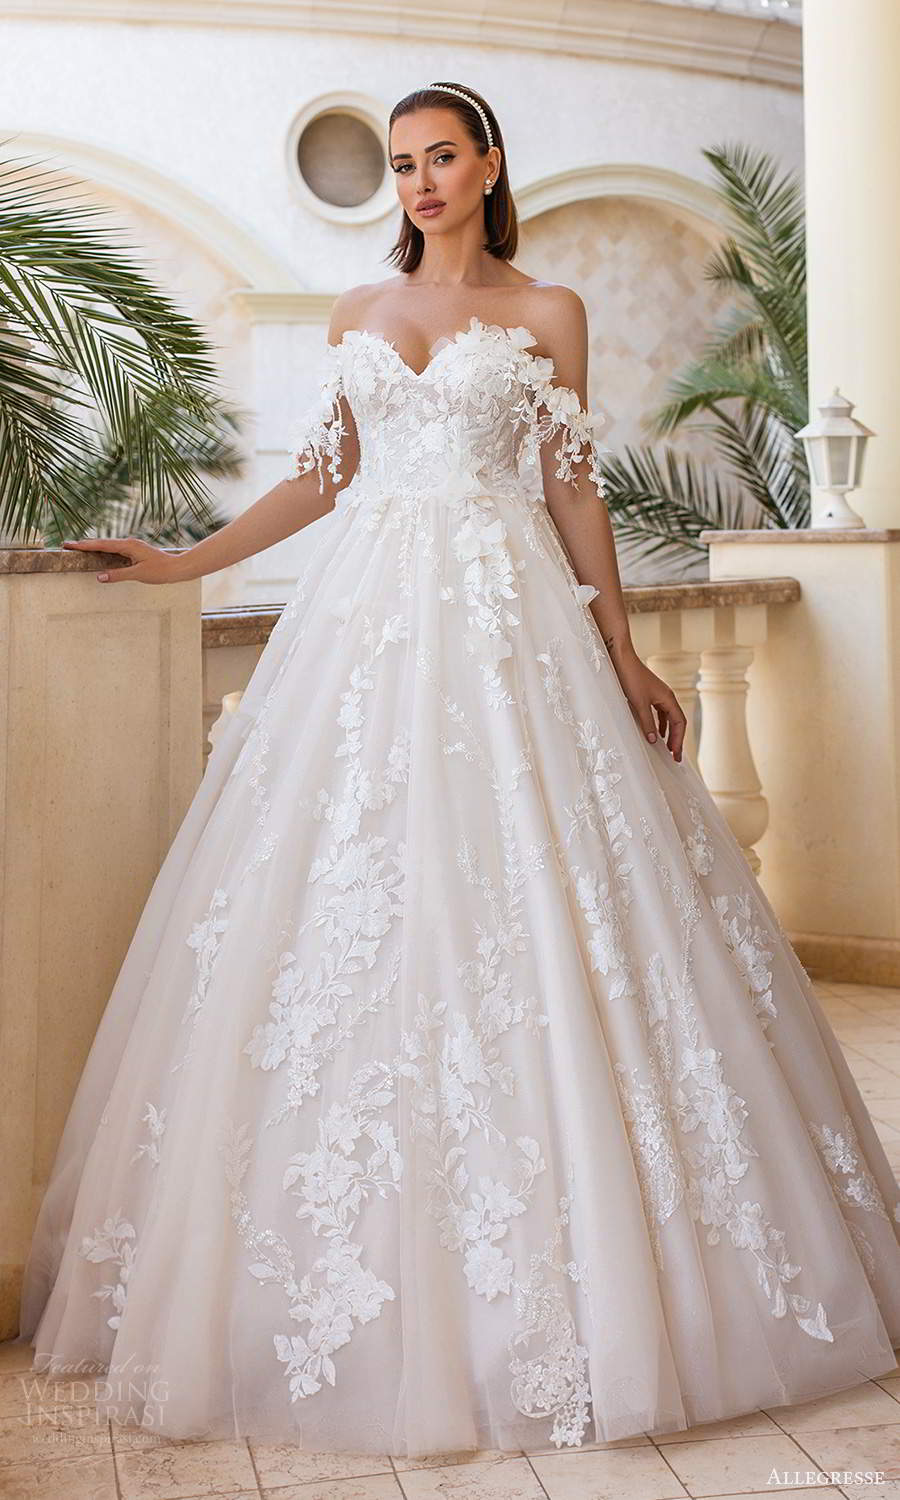 allegresse 2021 bridal off shoulder straps sweetheart neckline fully embellished a line ball gown wedding dress chapel train (15) mv